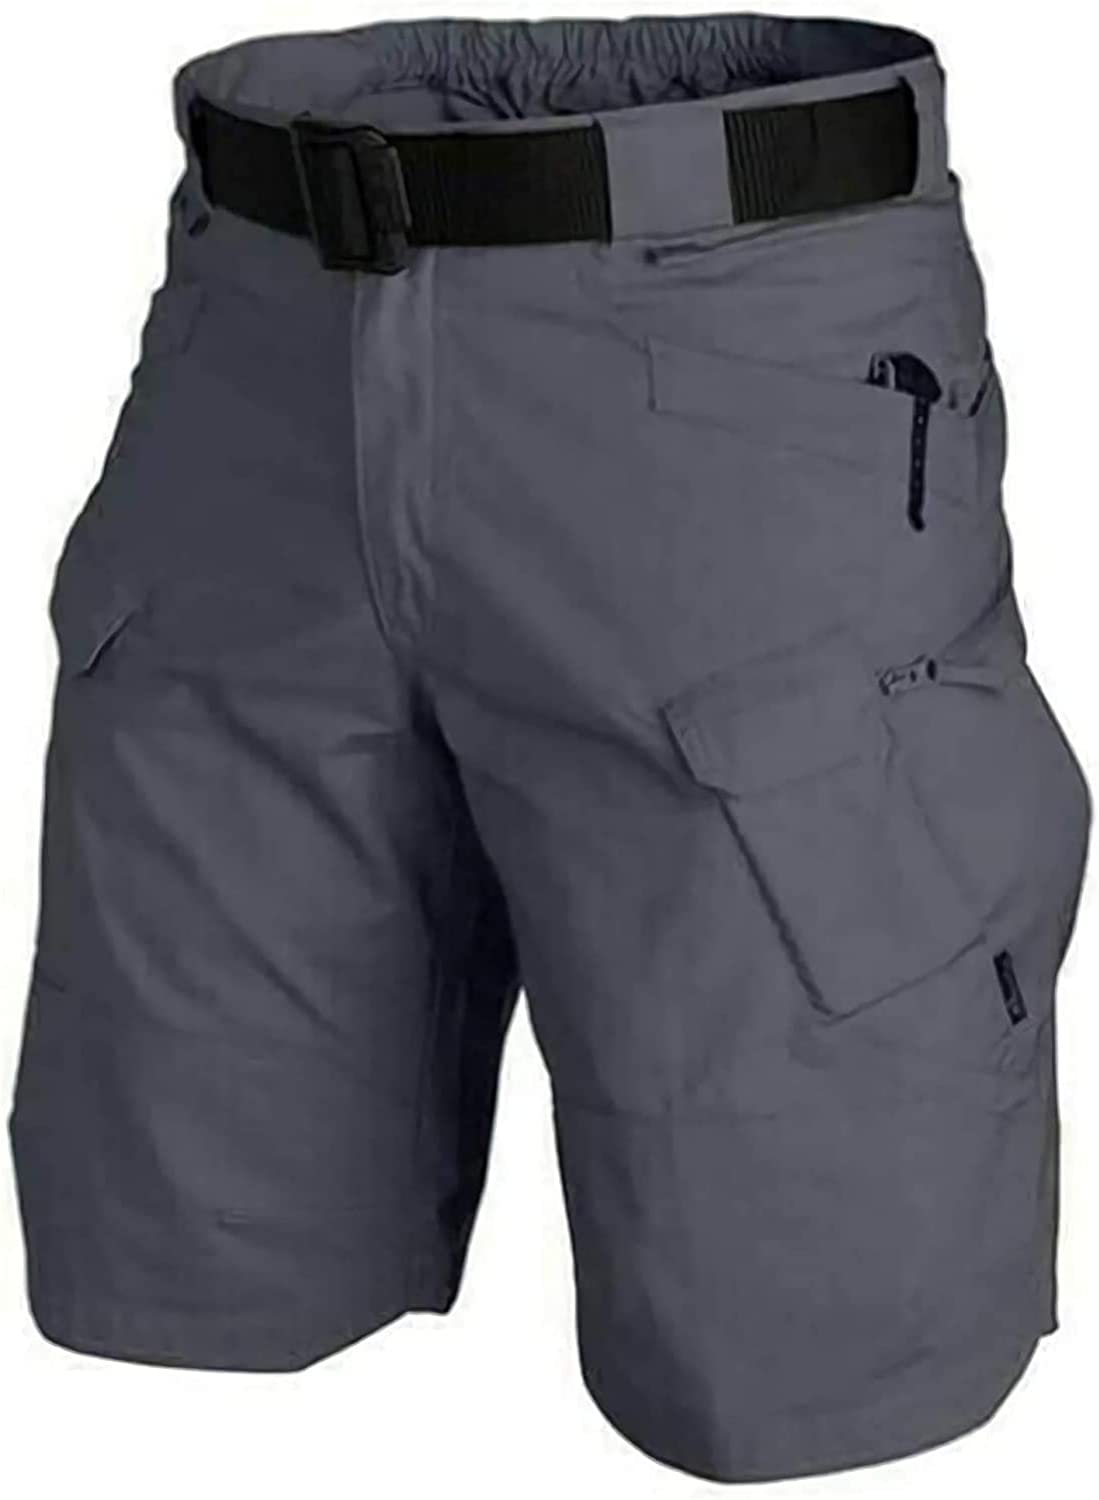 2021 Upgraded Mail order Tactical Waterproof Military Relaxed Financial sales sale Shorts Me Fit